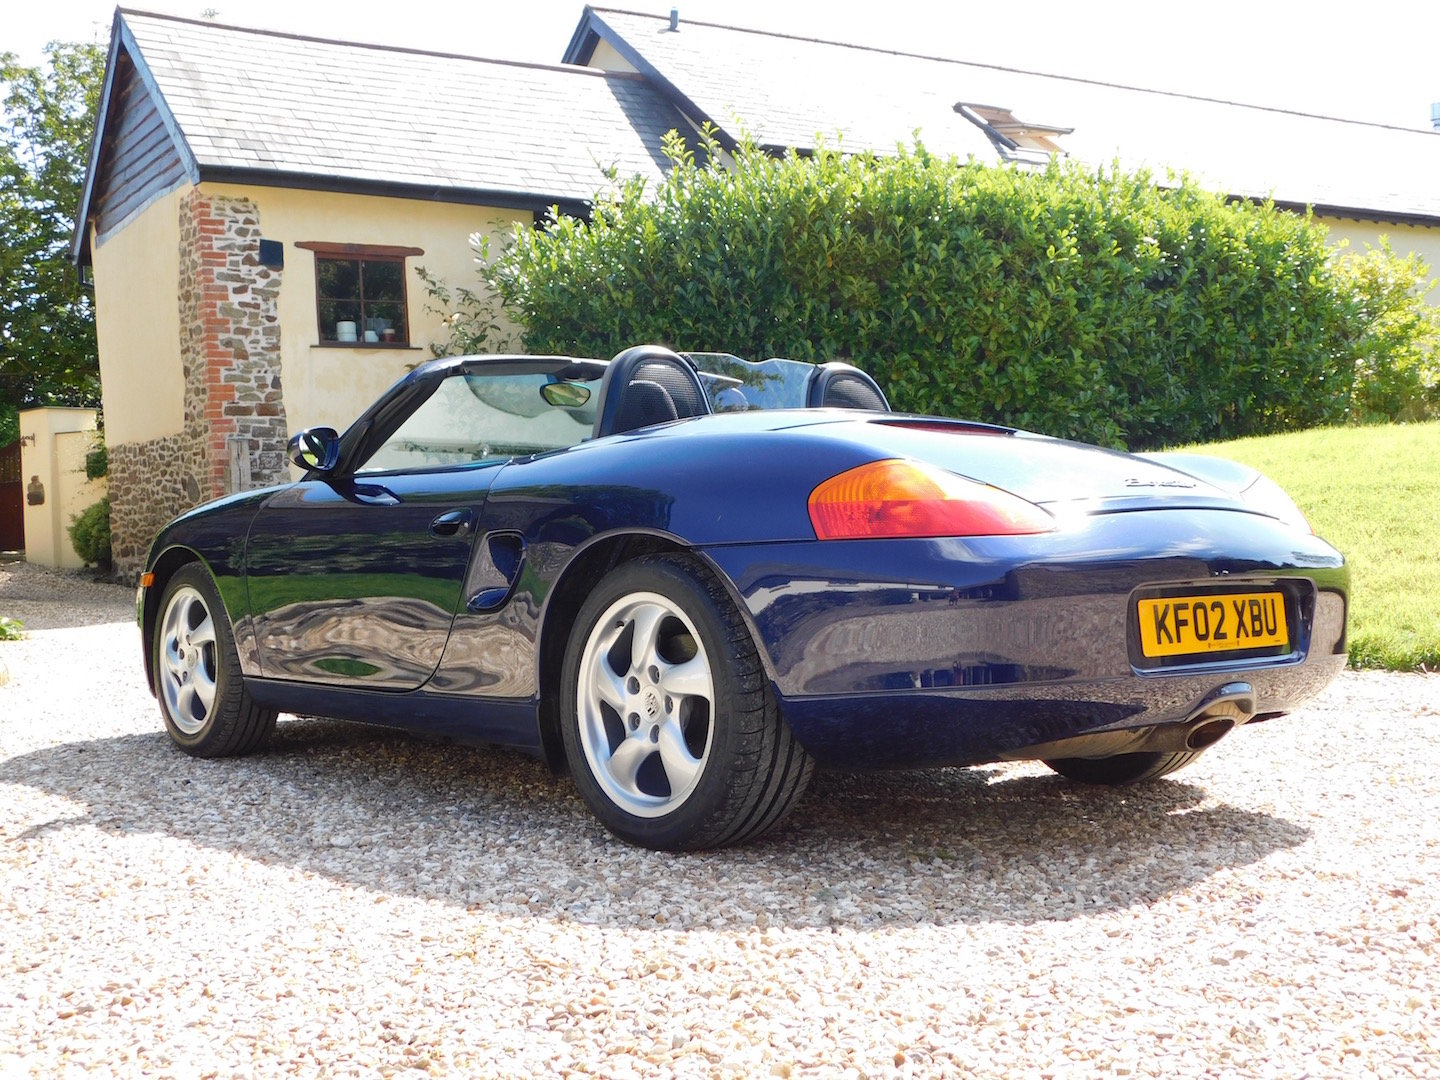 2002 Porsche 986 Boxster 2.7 - 35k miles, 1 owner from new For Sale (picture 3 of 6)